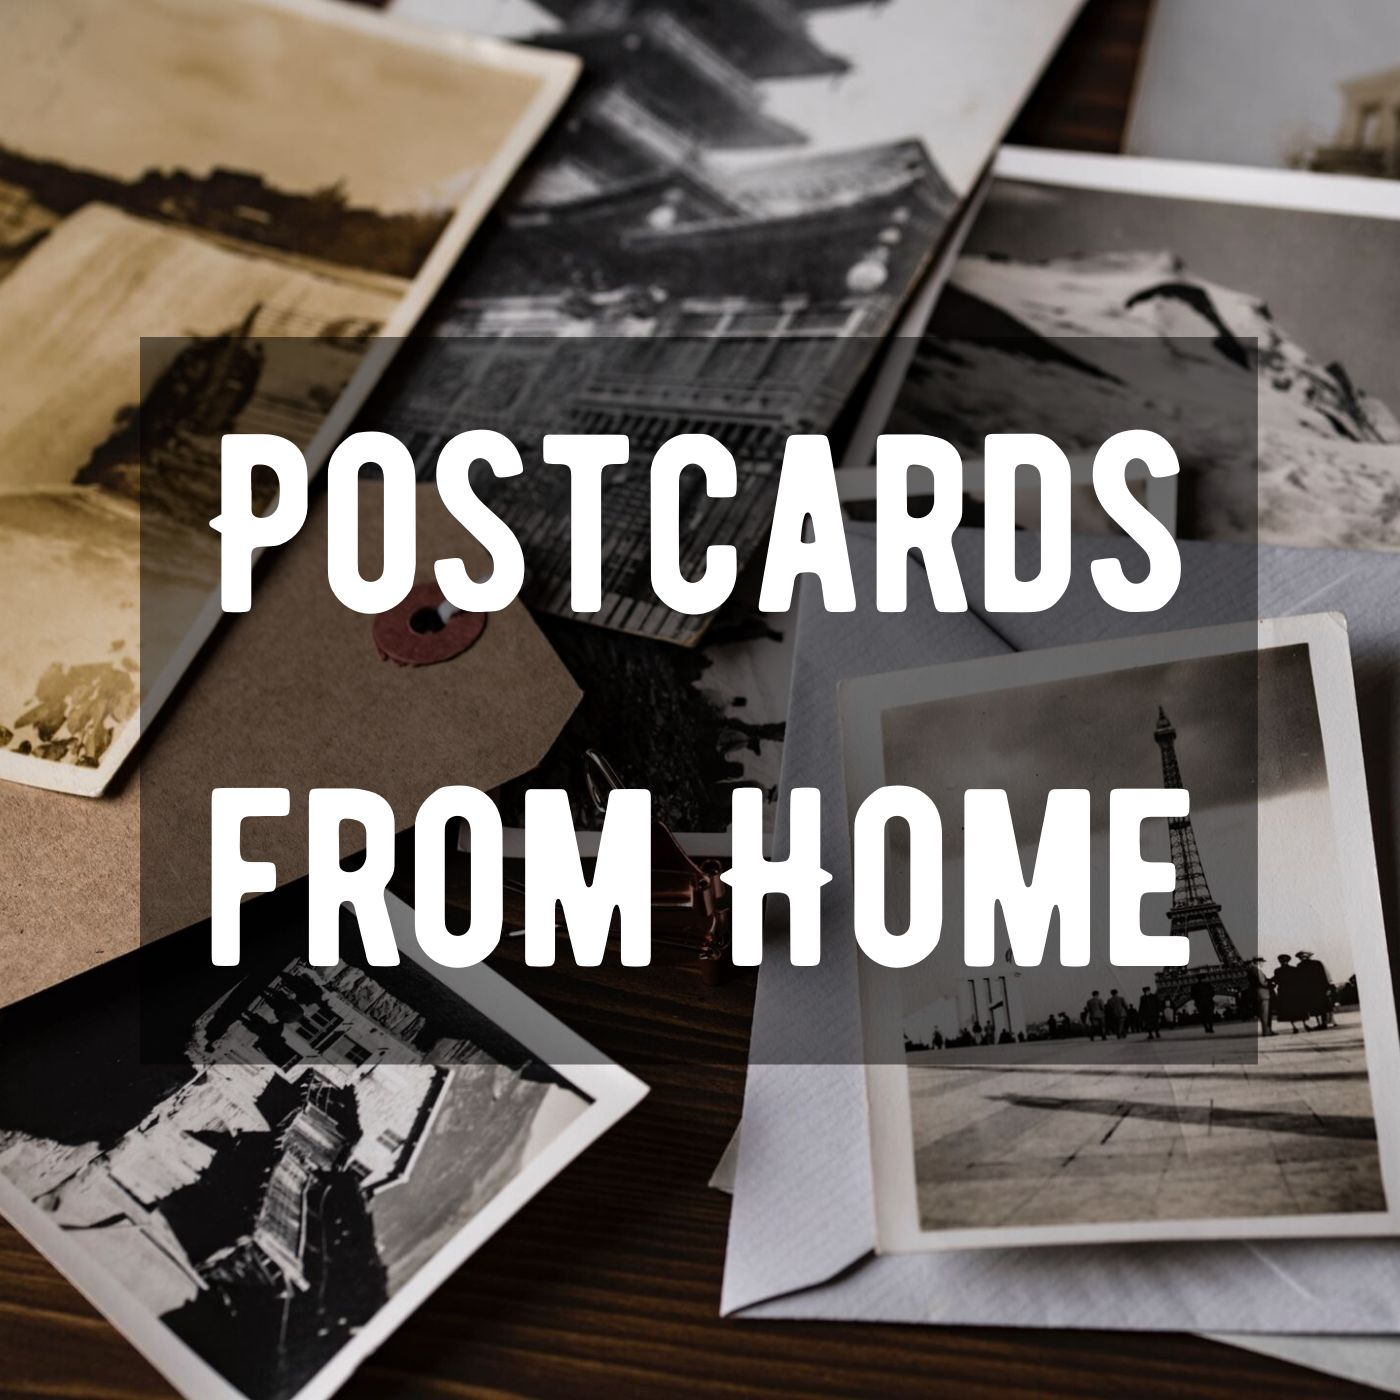 image that says postcards from home